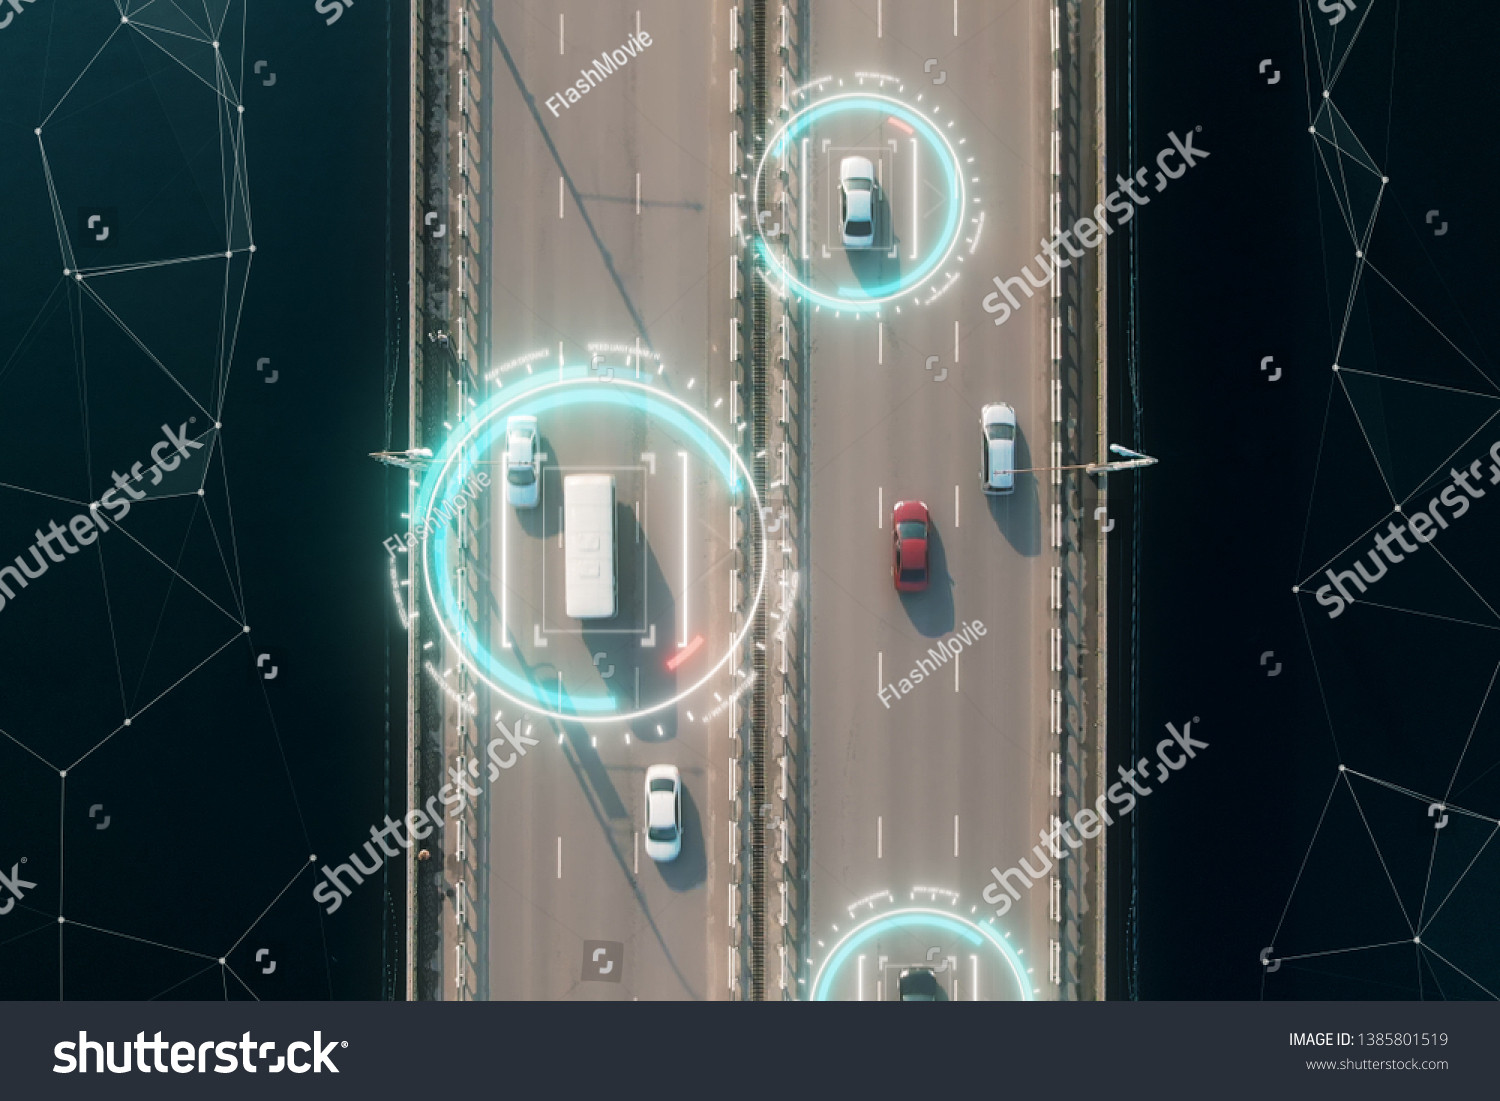 Aerial view of self driving autopilot cars driving on a highway with technology tracking them, showing speed and who is controlling the car. Visual effects clip shot. #1385801519